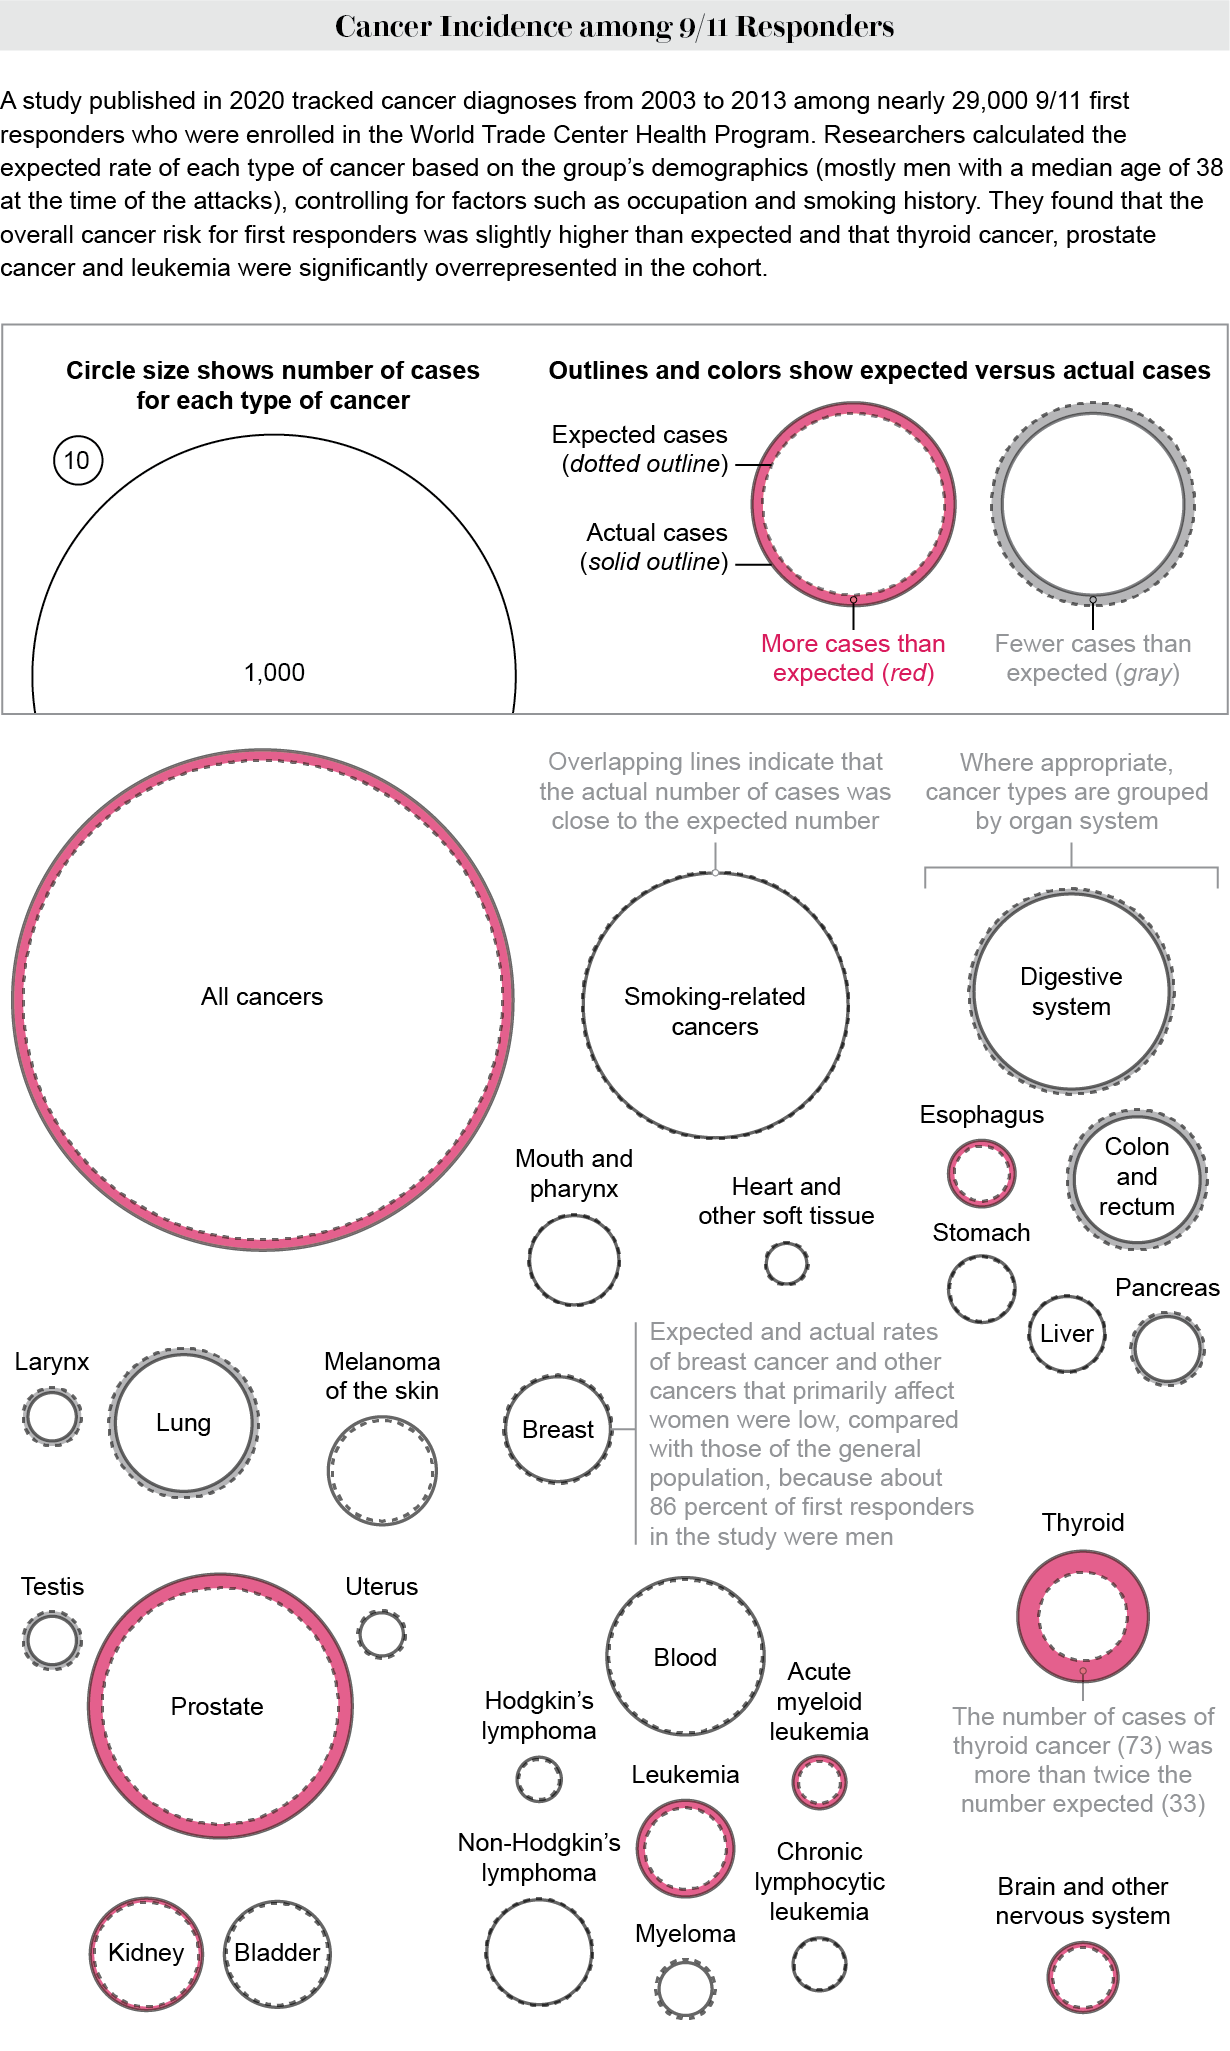 Graphic compares expected and actual rates of various cancers among 9/11 responders who were tracked from 2003 to 2013.